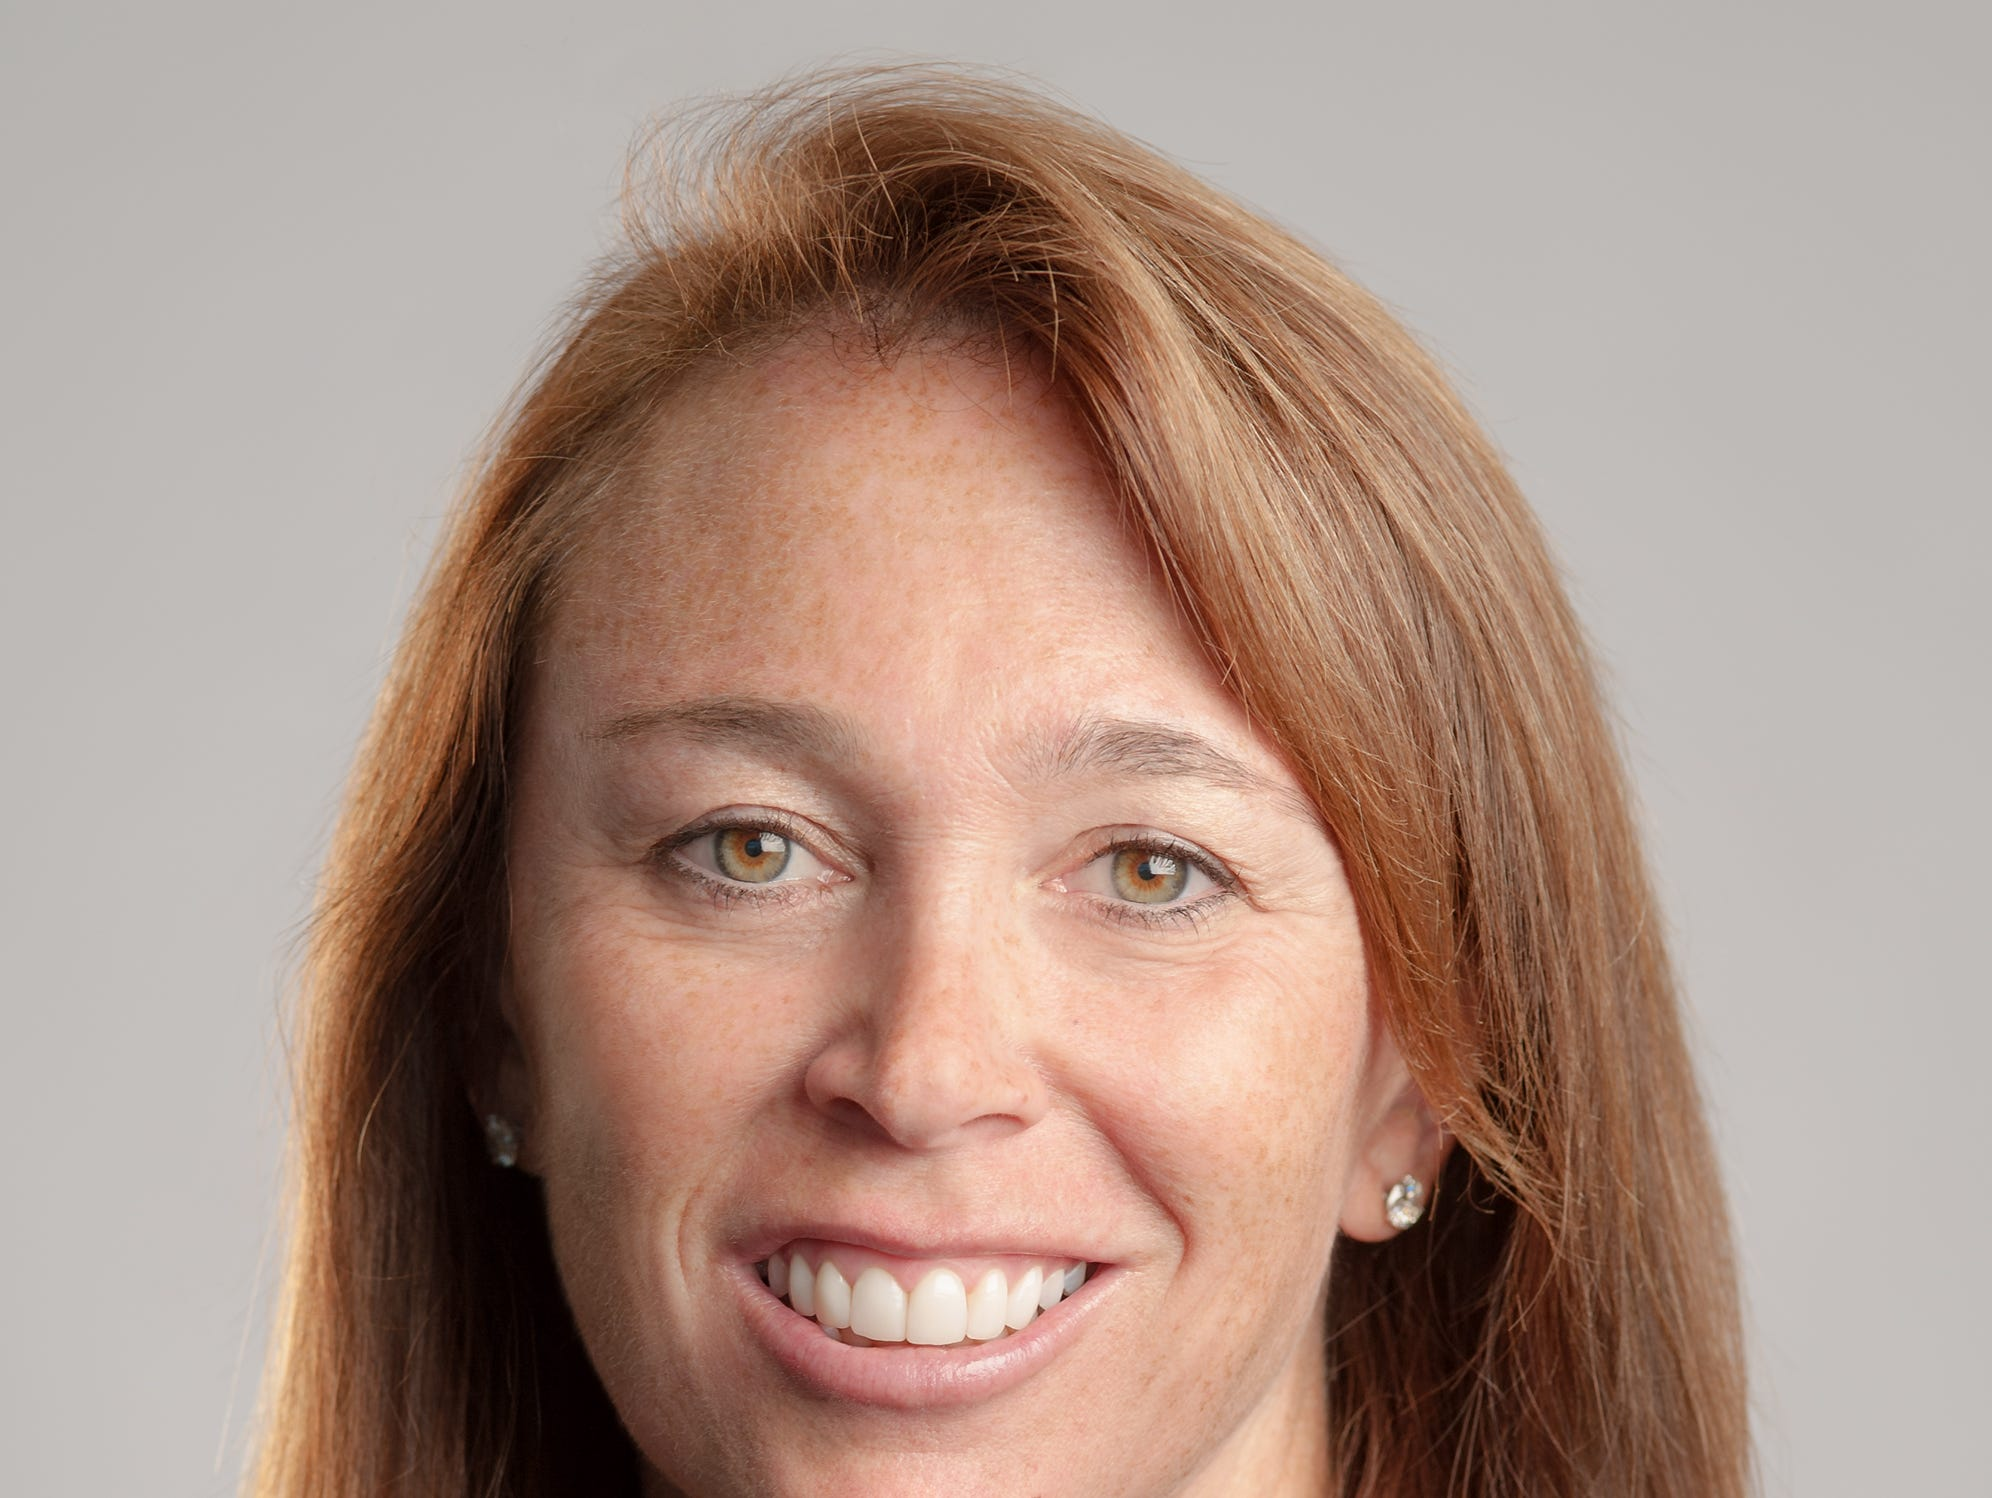 Dropbox named Vanessa Wittman, formerly of Google's Motorola Mobility, as its new CFO.